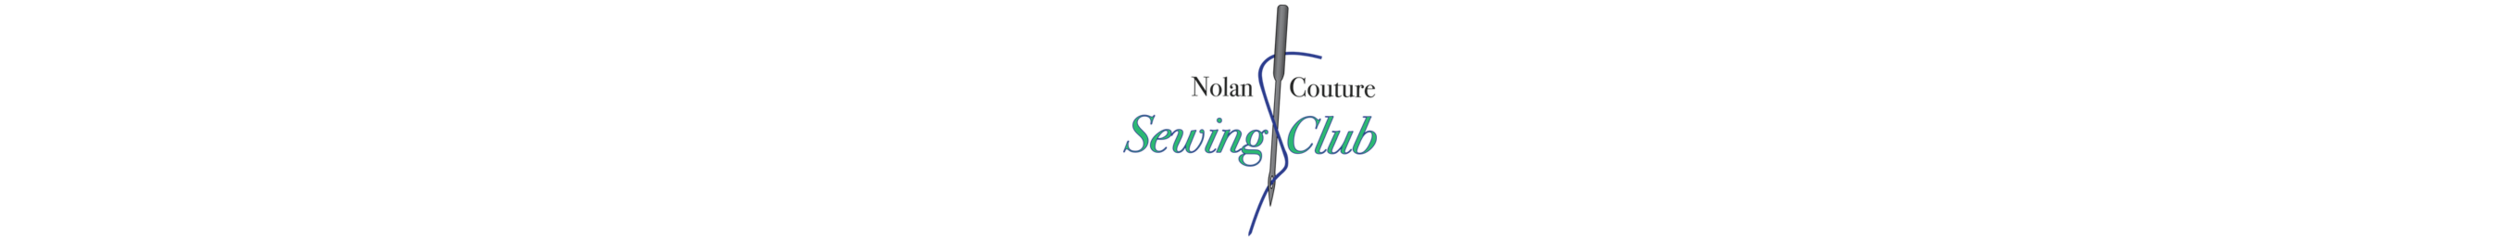 Sewing Club Logo banner.png